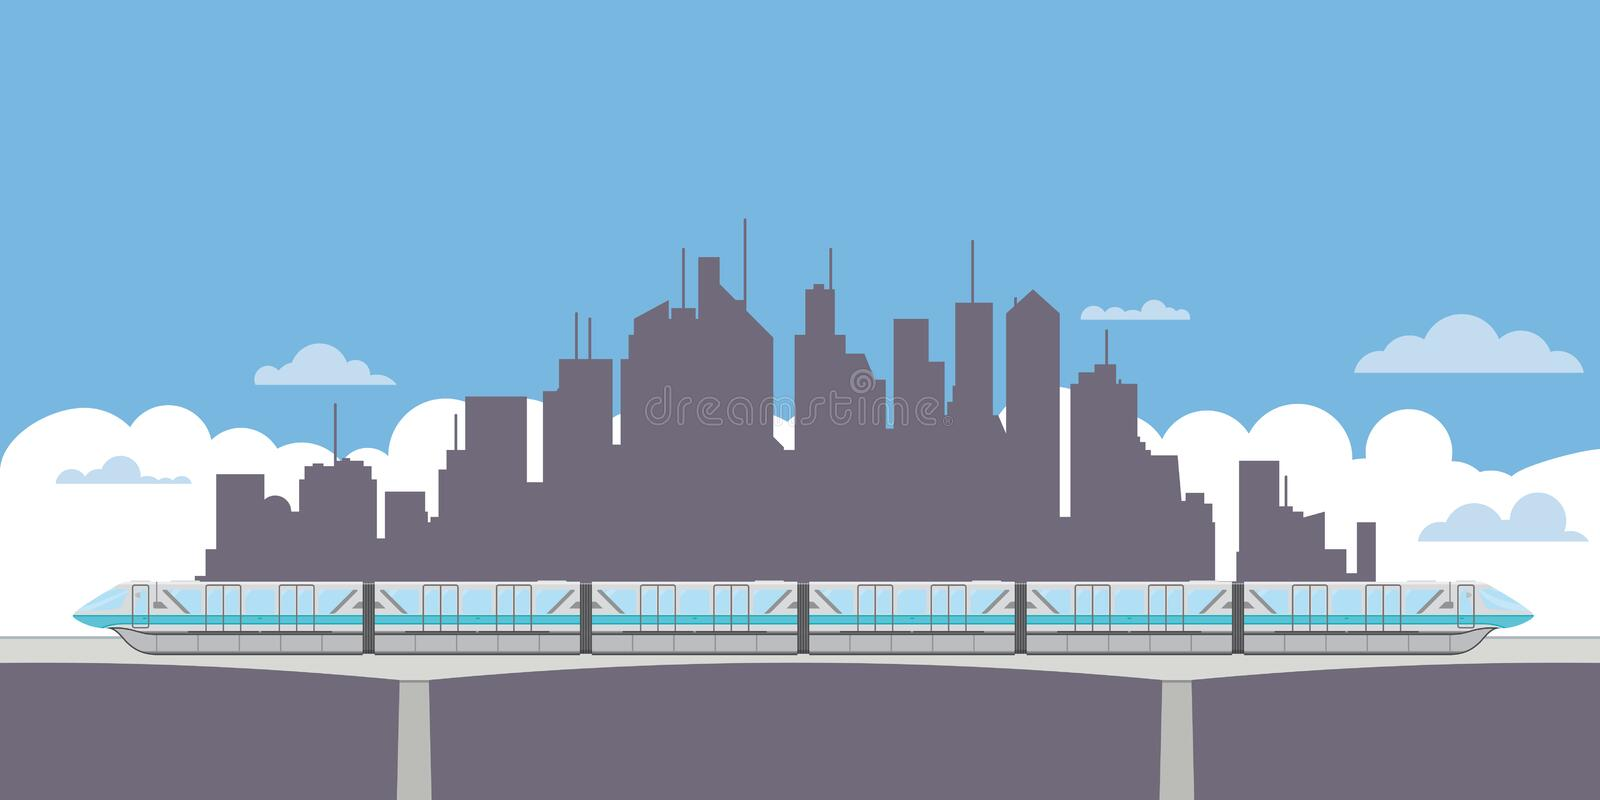 Monorail train and city silhouette banner stock illustration